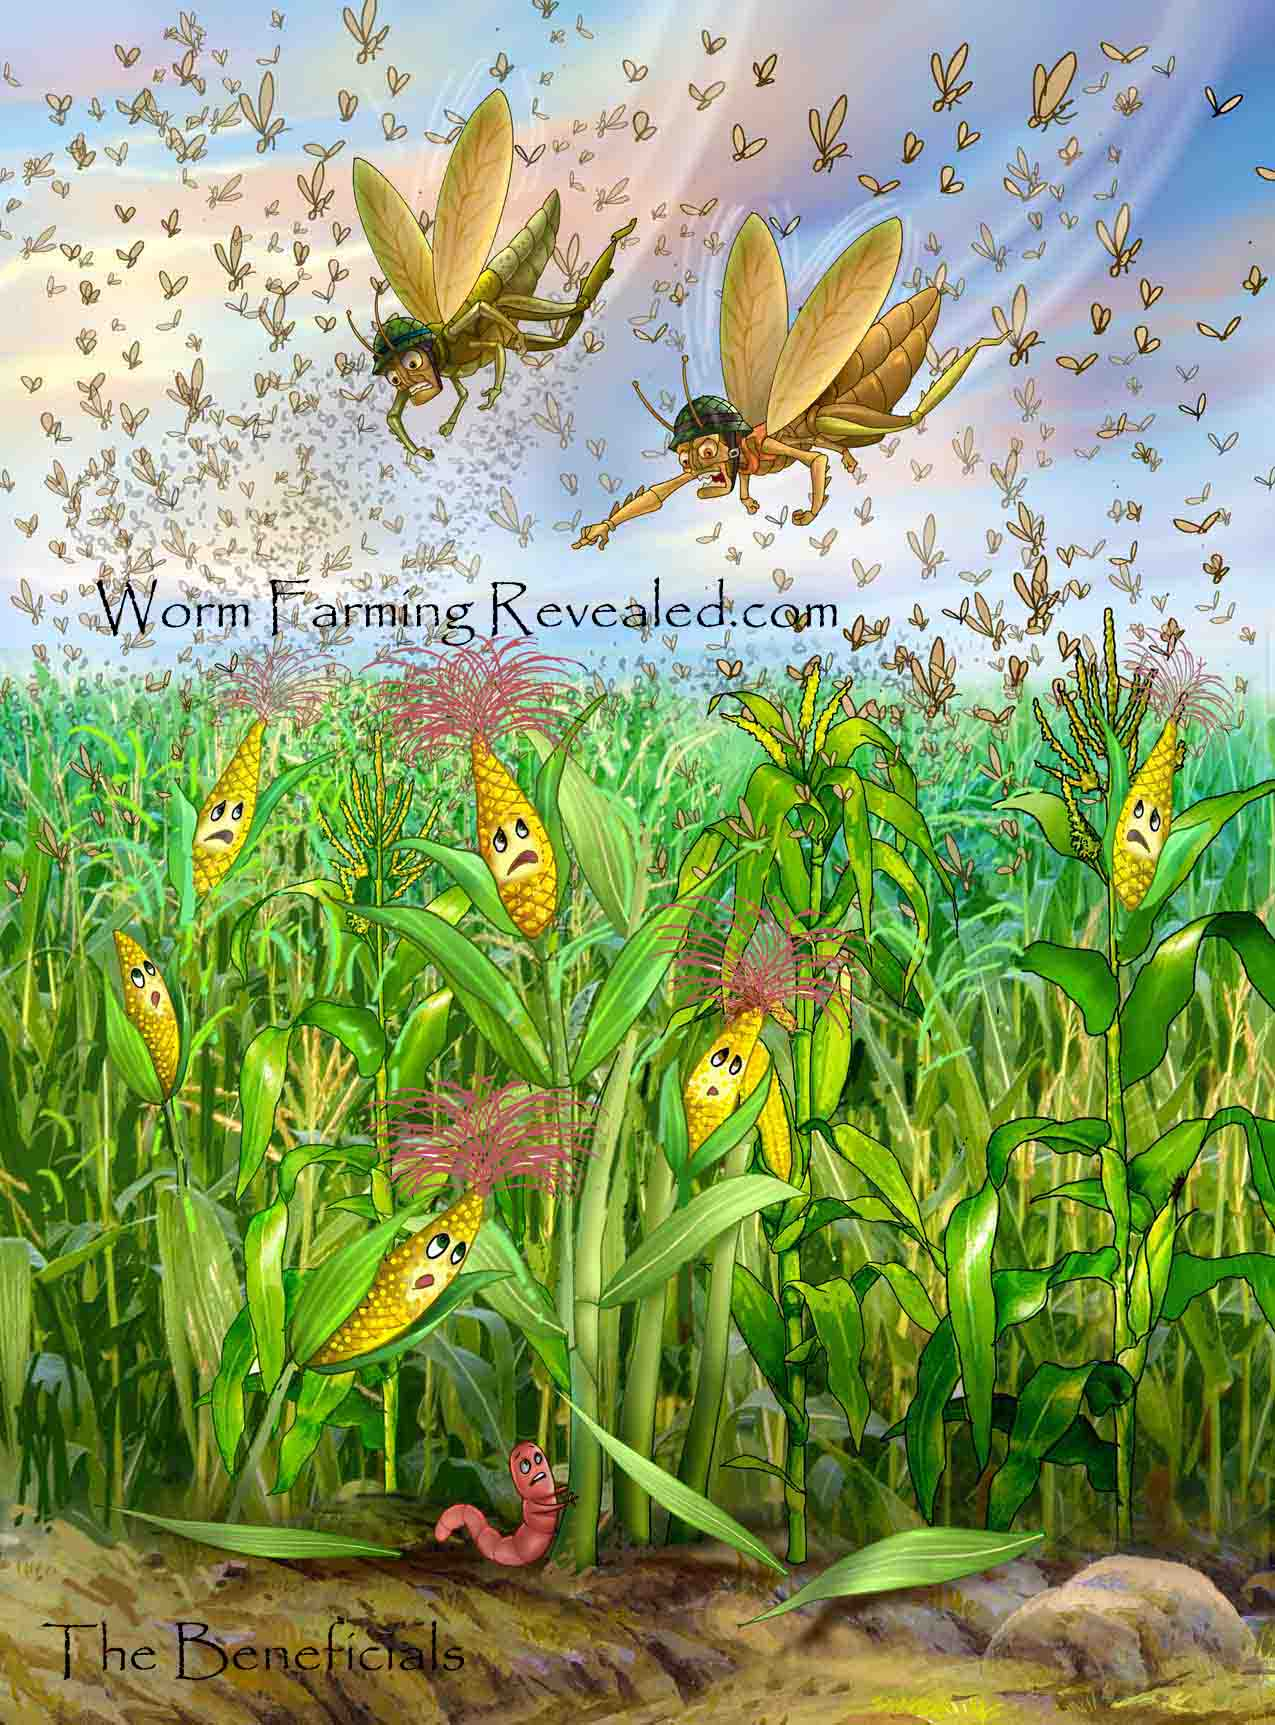 The Beneficials - Epic Invasion of Hungry Pests